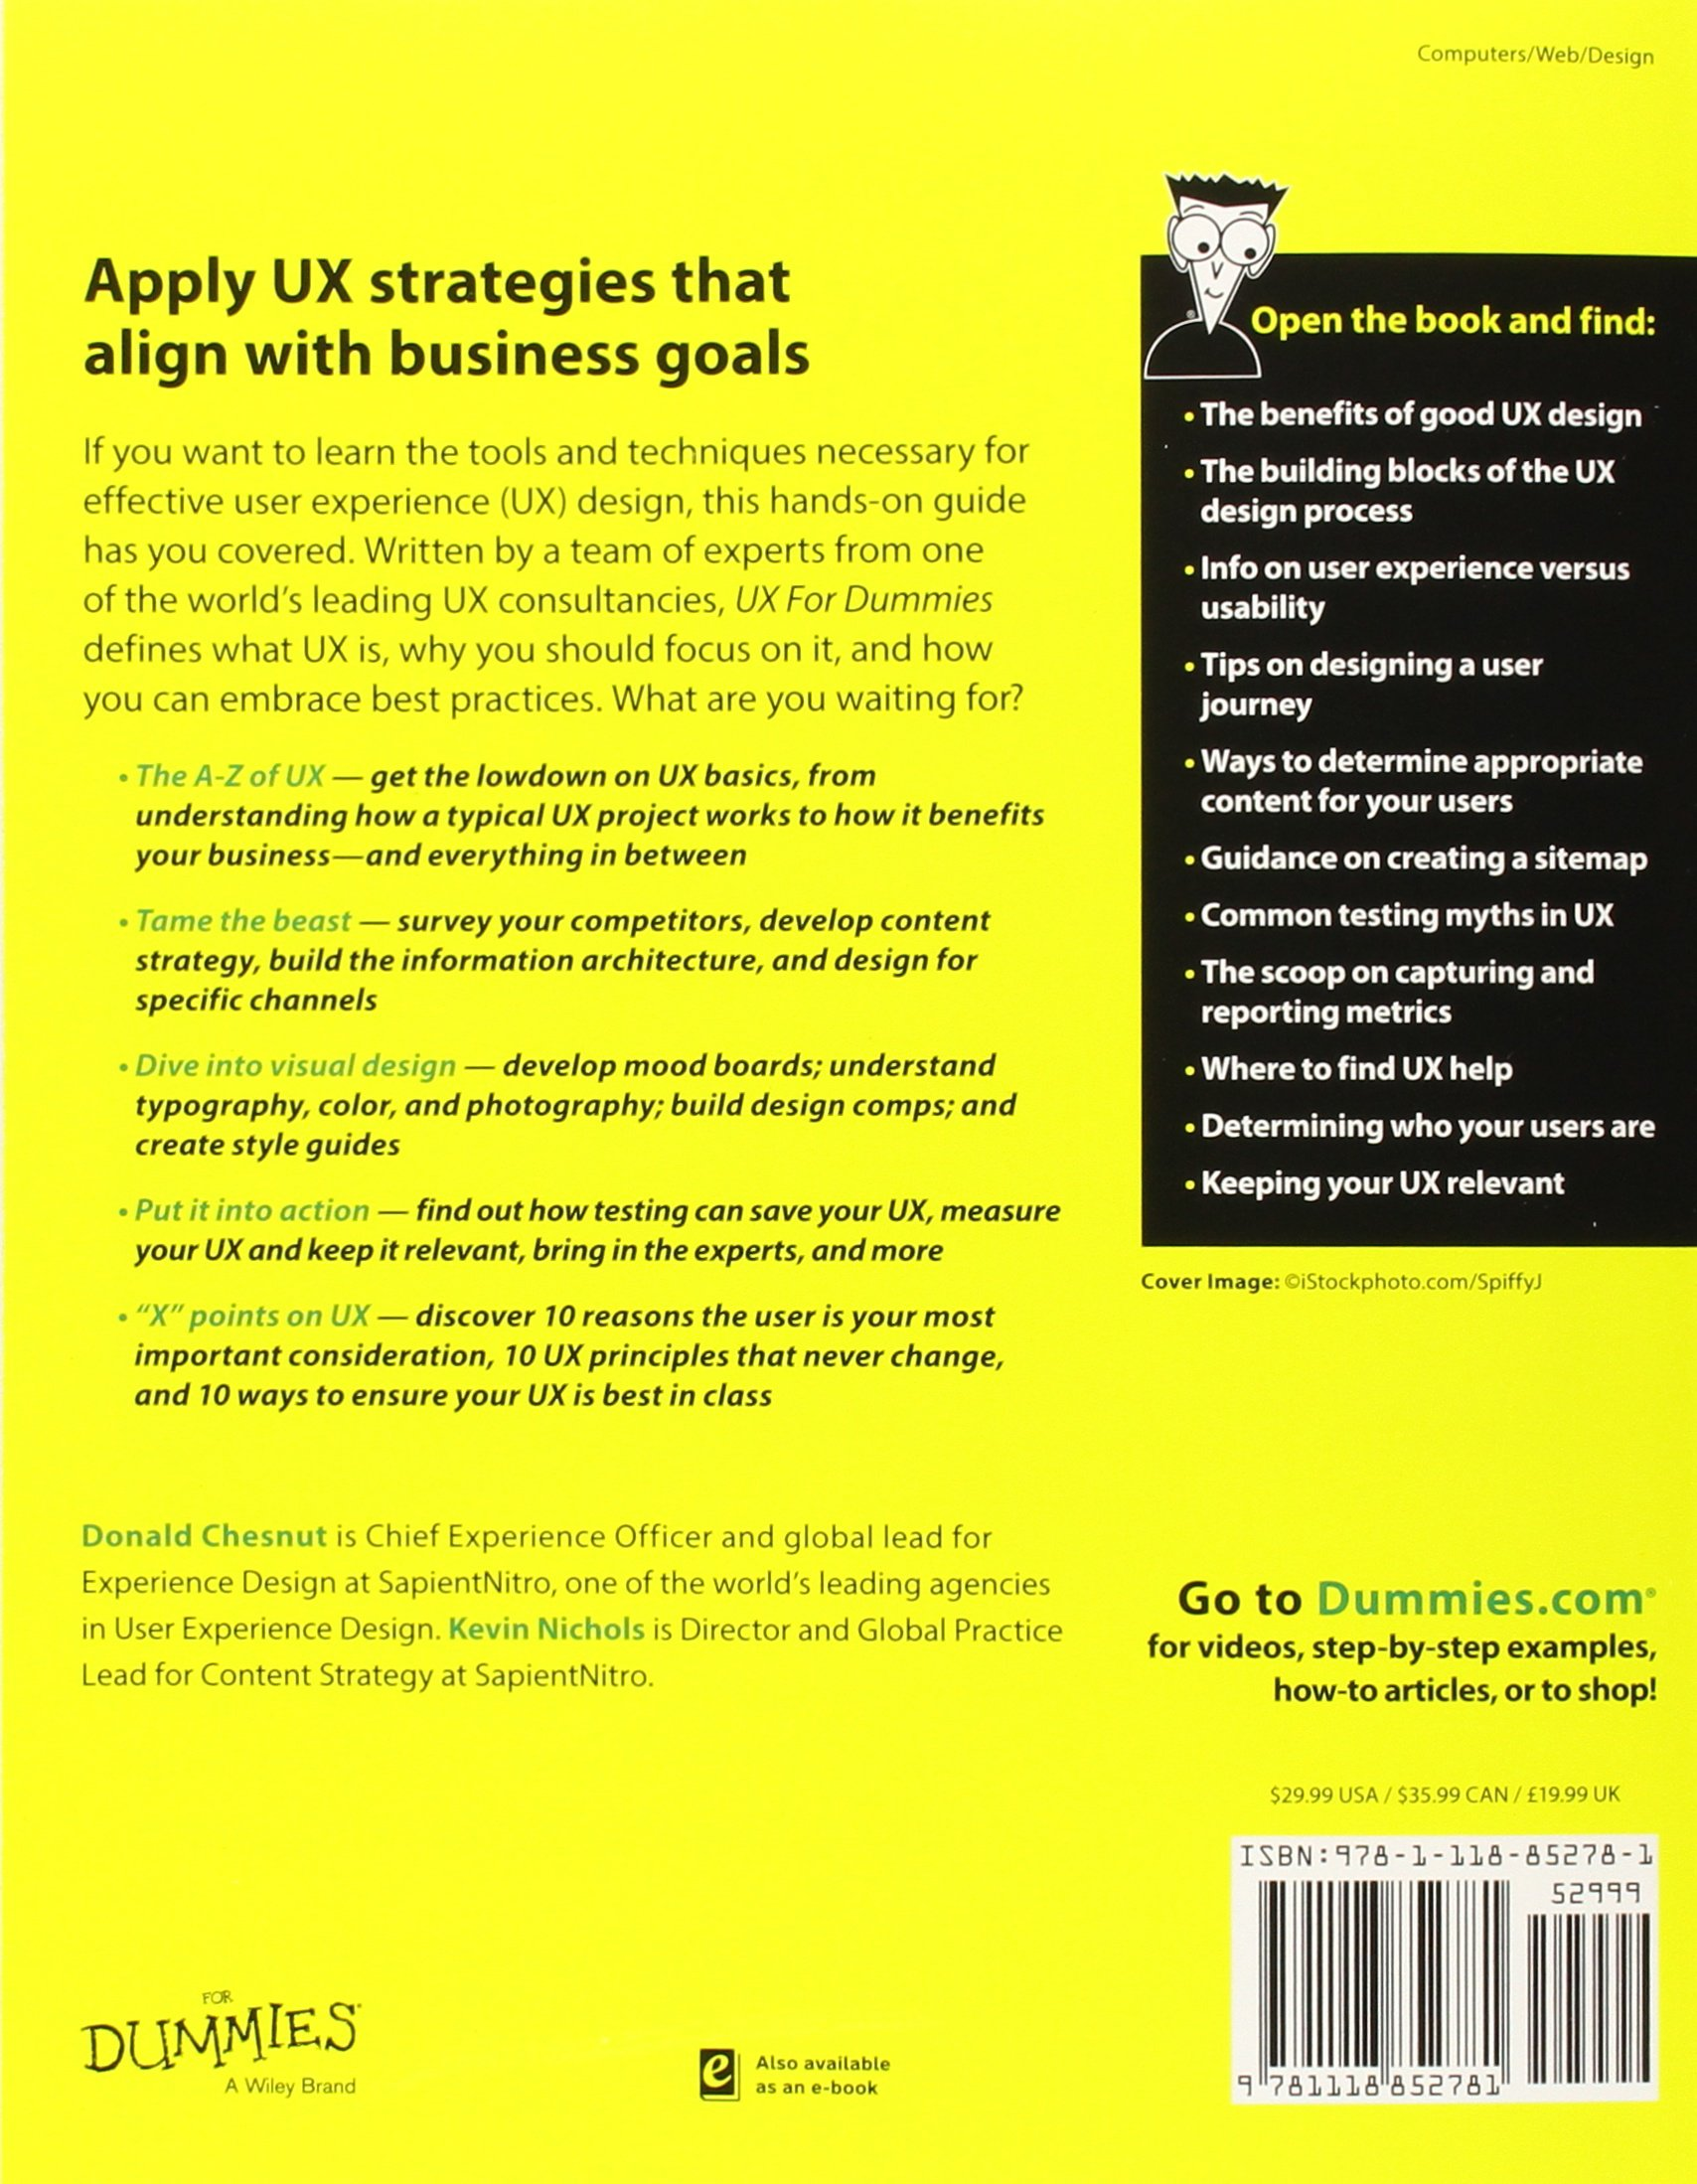 Ux for dummies amazon kevin p nichols donald chesnut books 1betcityfo Image collections